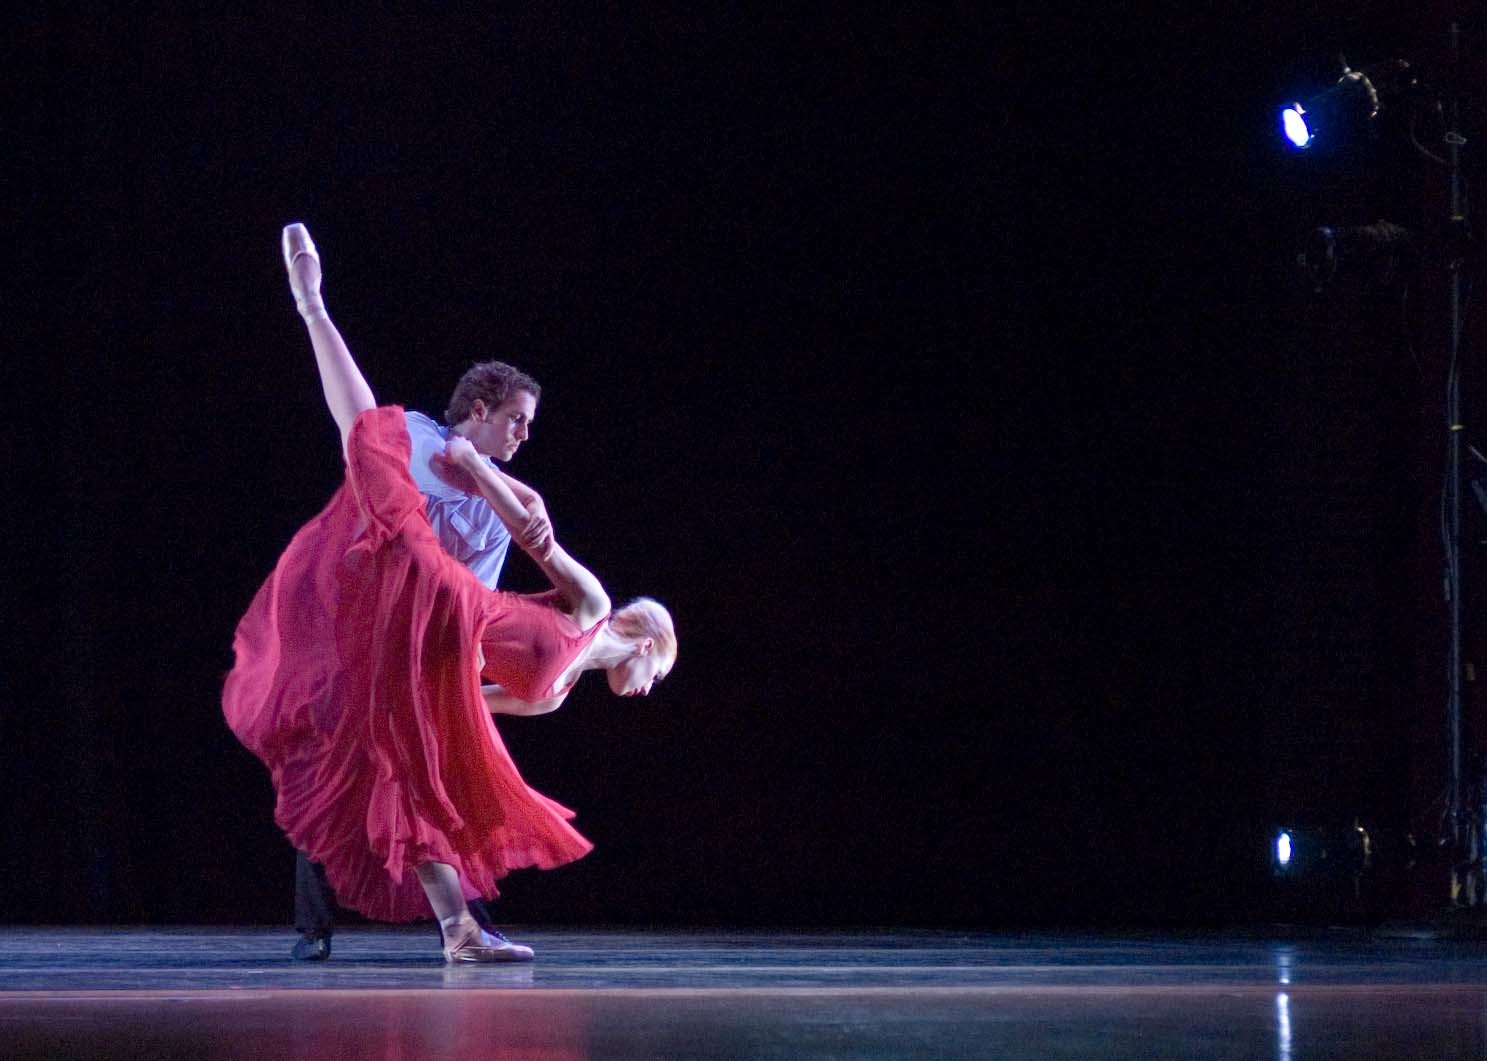 ANNOUNCING CHICAGO'S NEWEST DANCE COMPANY CHICAGO REPERTORY BALLET